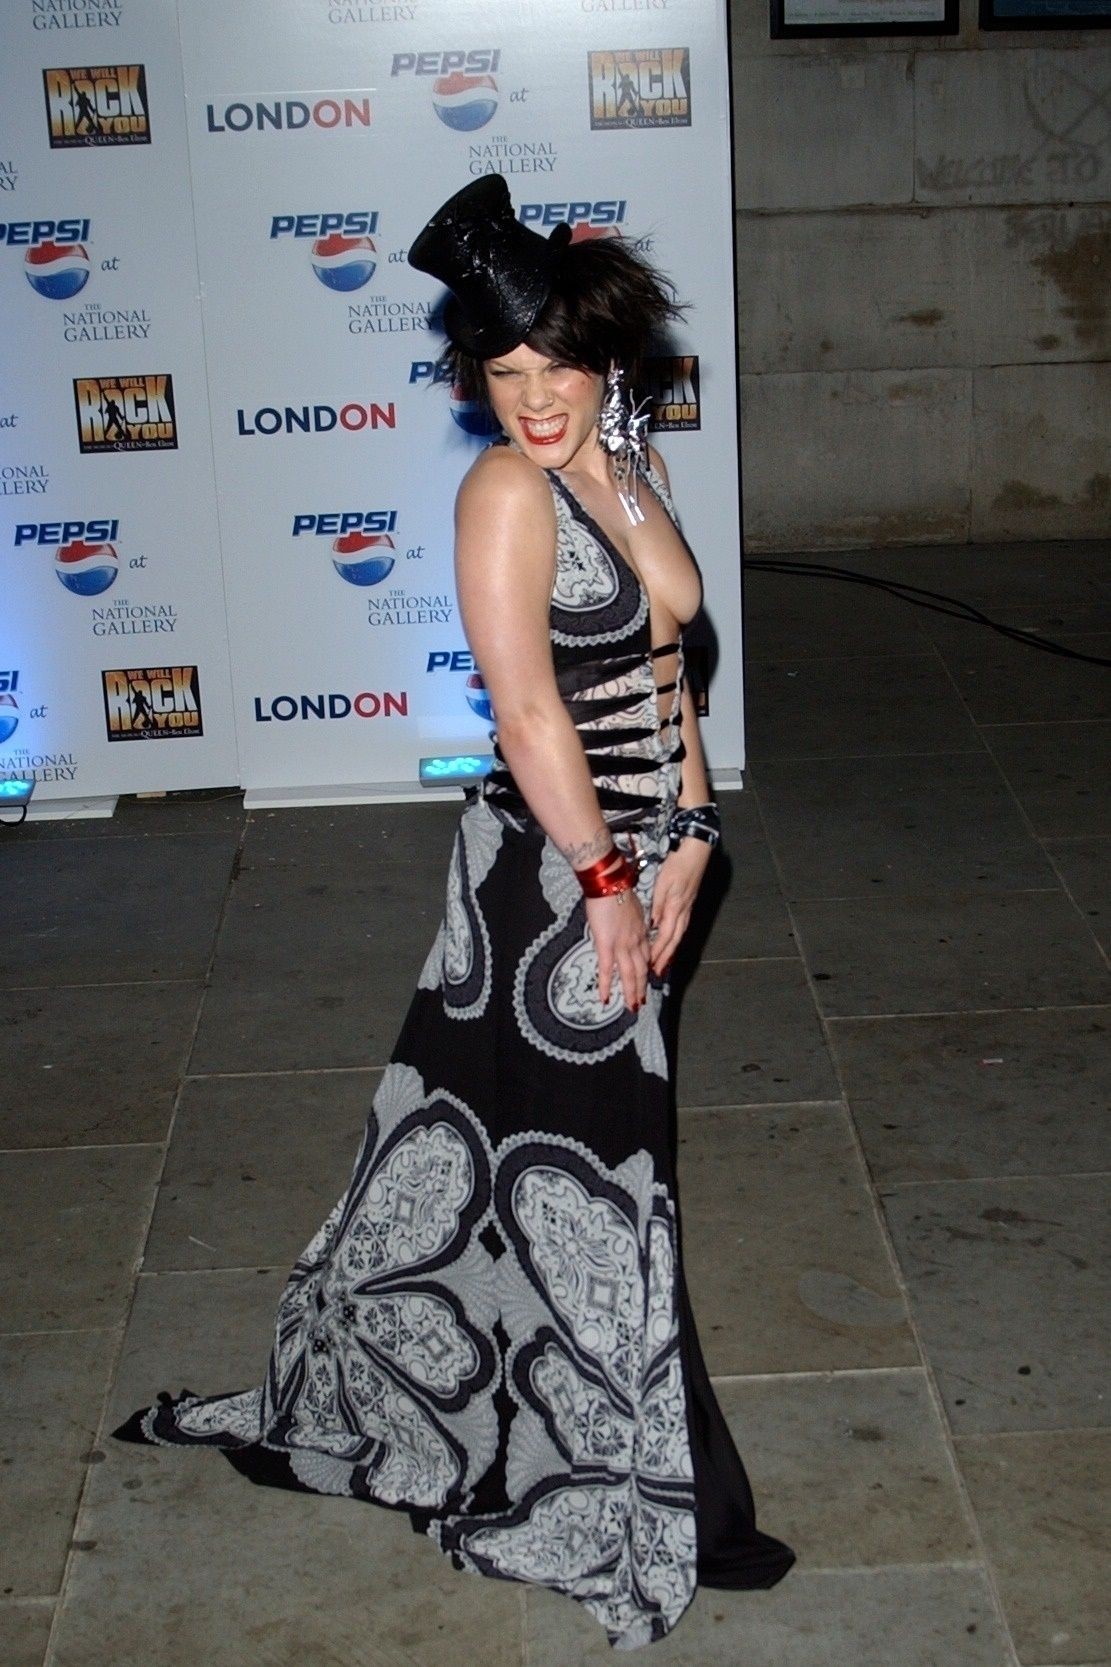 P!nk Shows Off Her Tits At Pepsi Event In Trafalgar Square In London 0015